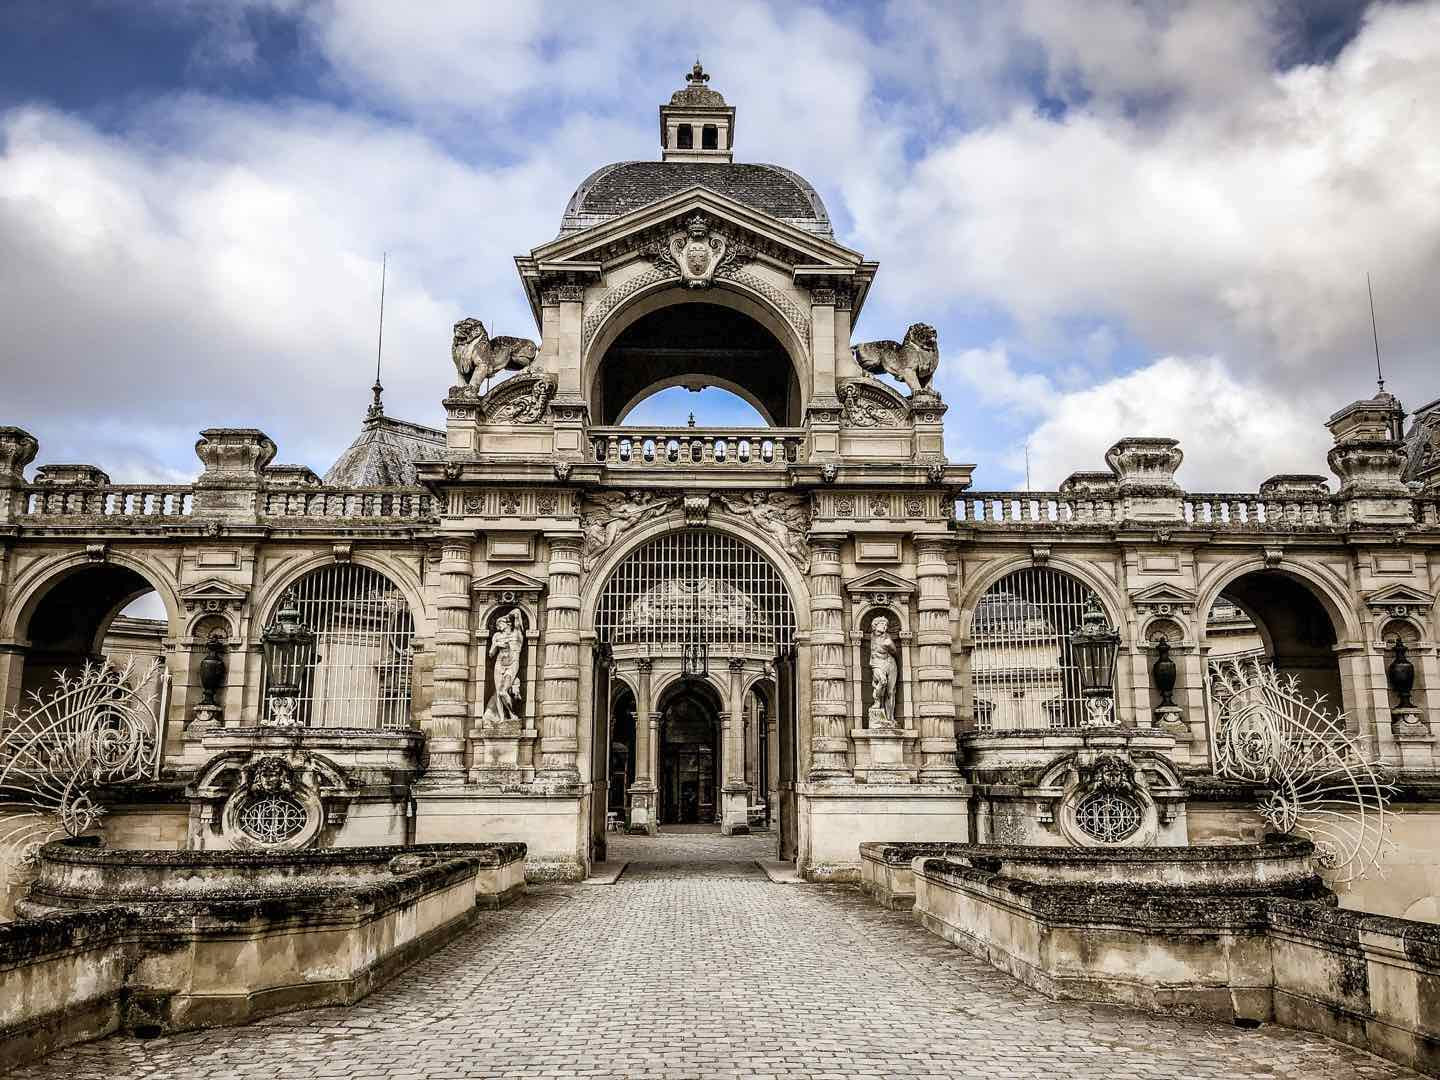 48 Hours in Chantilly France by Leah Walker